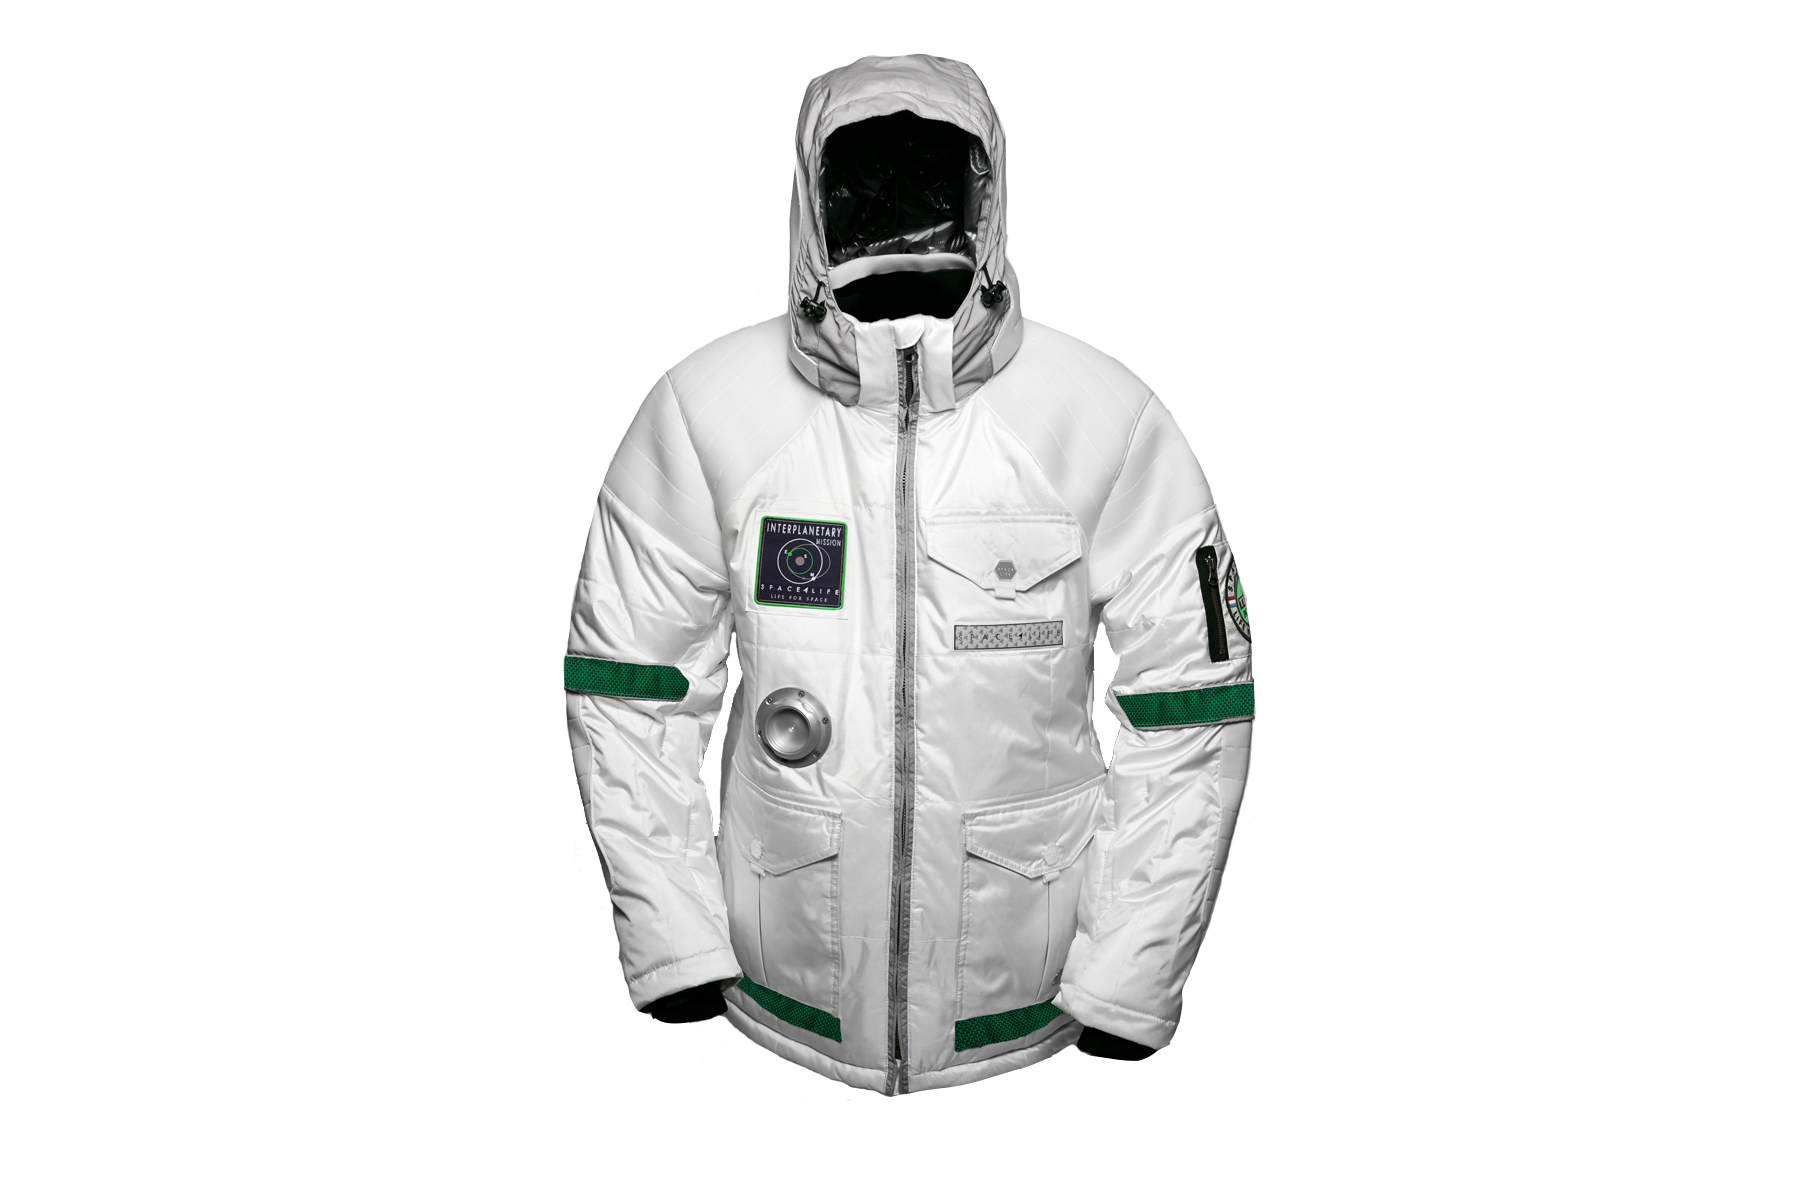 SPACELIFE Unveils the Made-for-Interplanetary-Travel Terra-Line Jacket